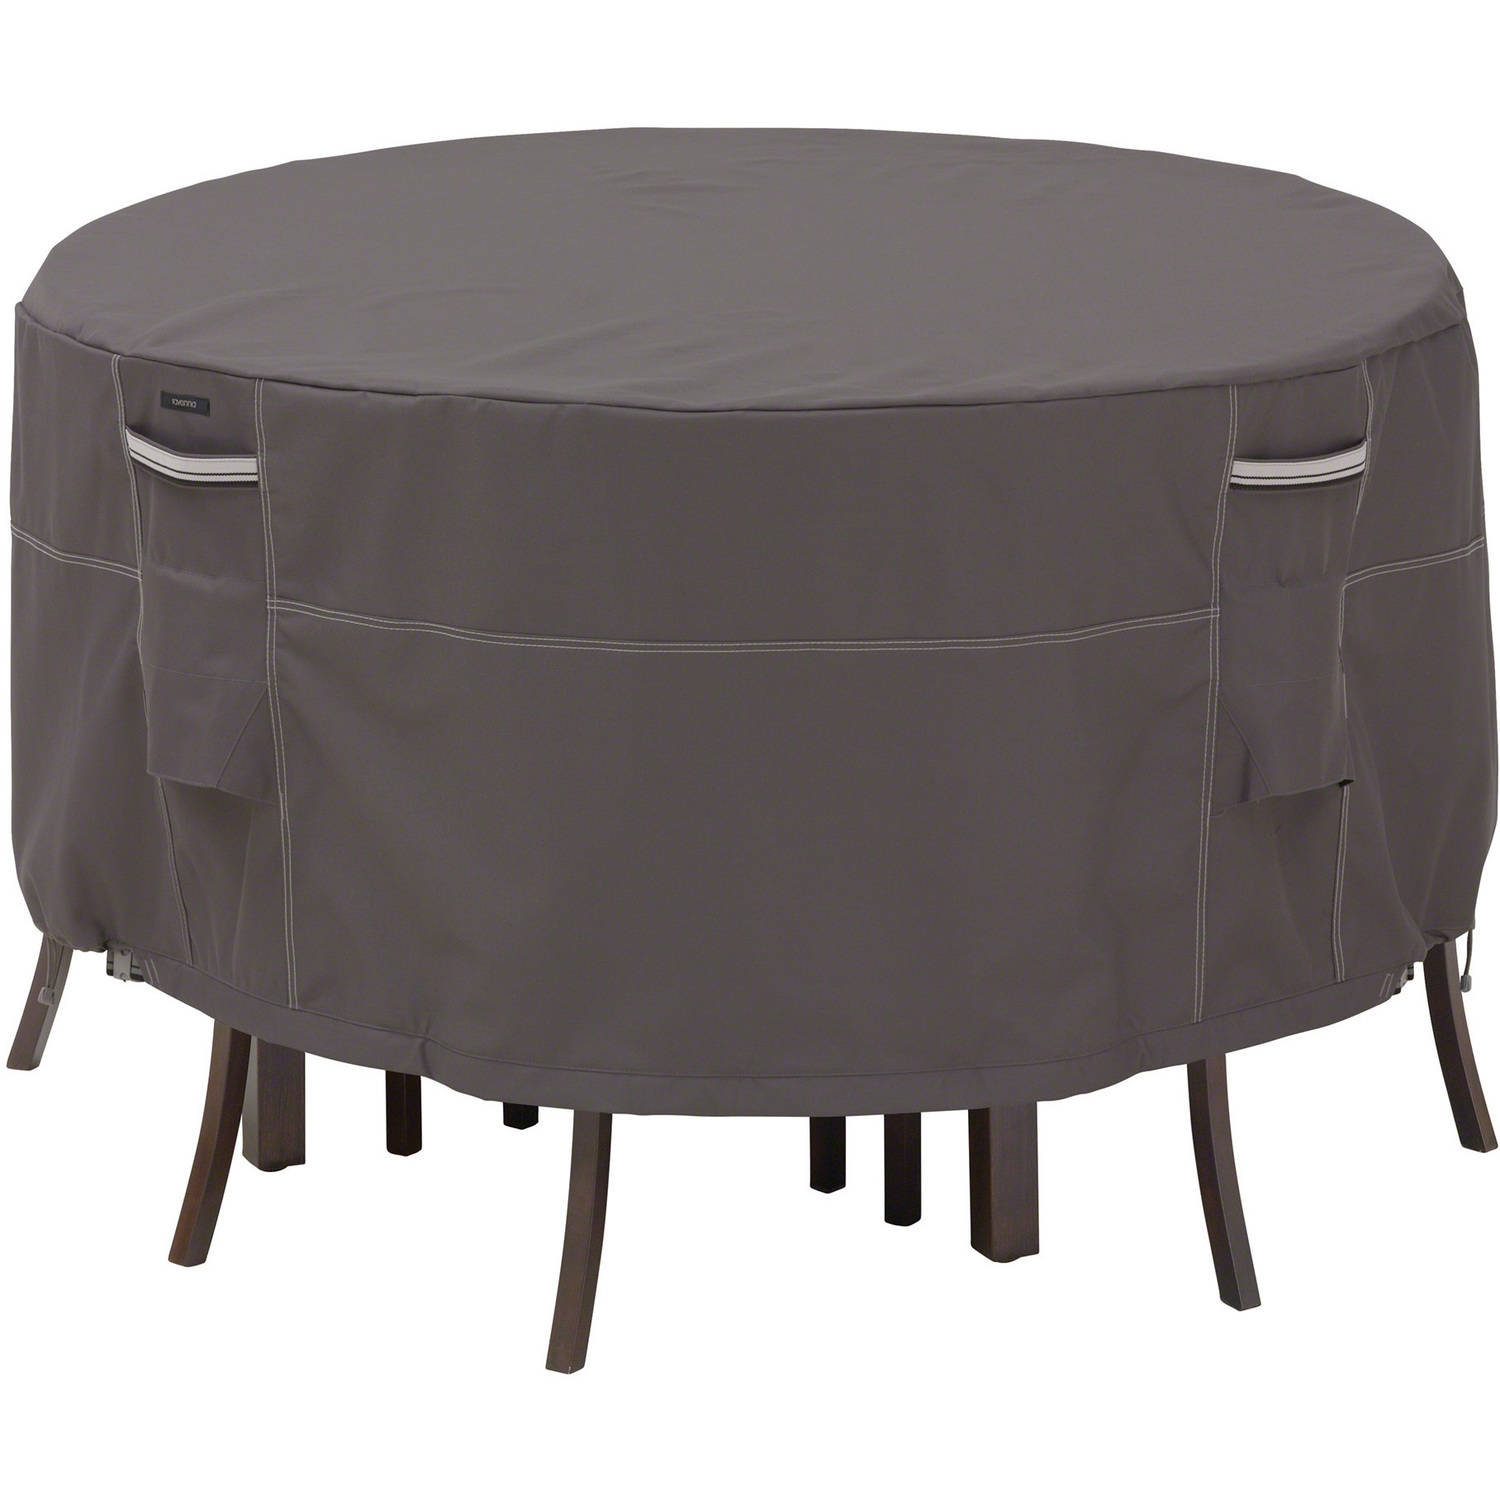 """Classic Accessories Ravenna Bistro Patio Table and Chair Furniture Storage Cover, Fits Tables up to 52"""" Diameter, Taupe"""